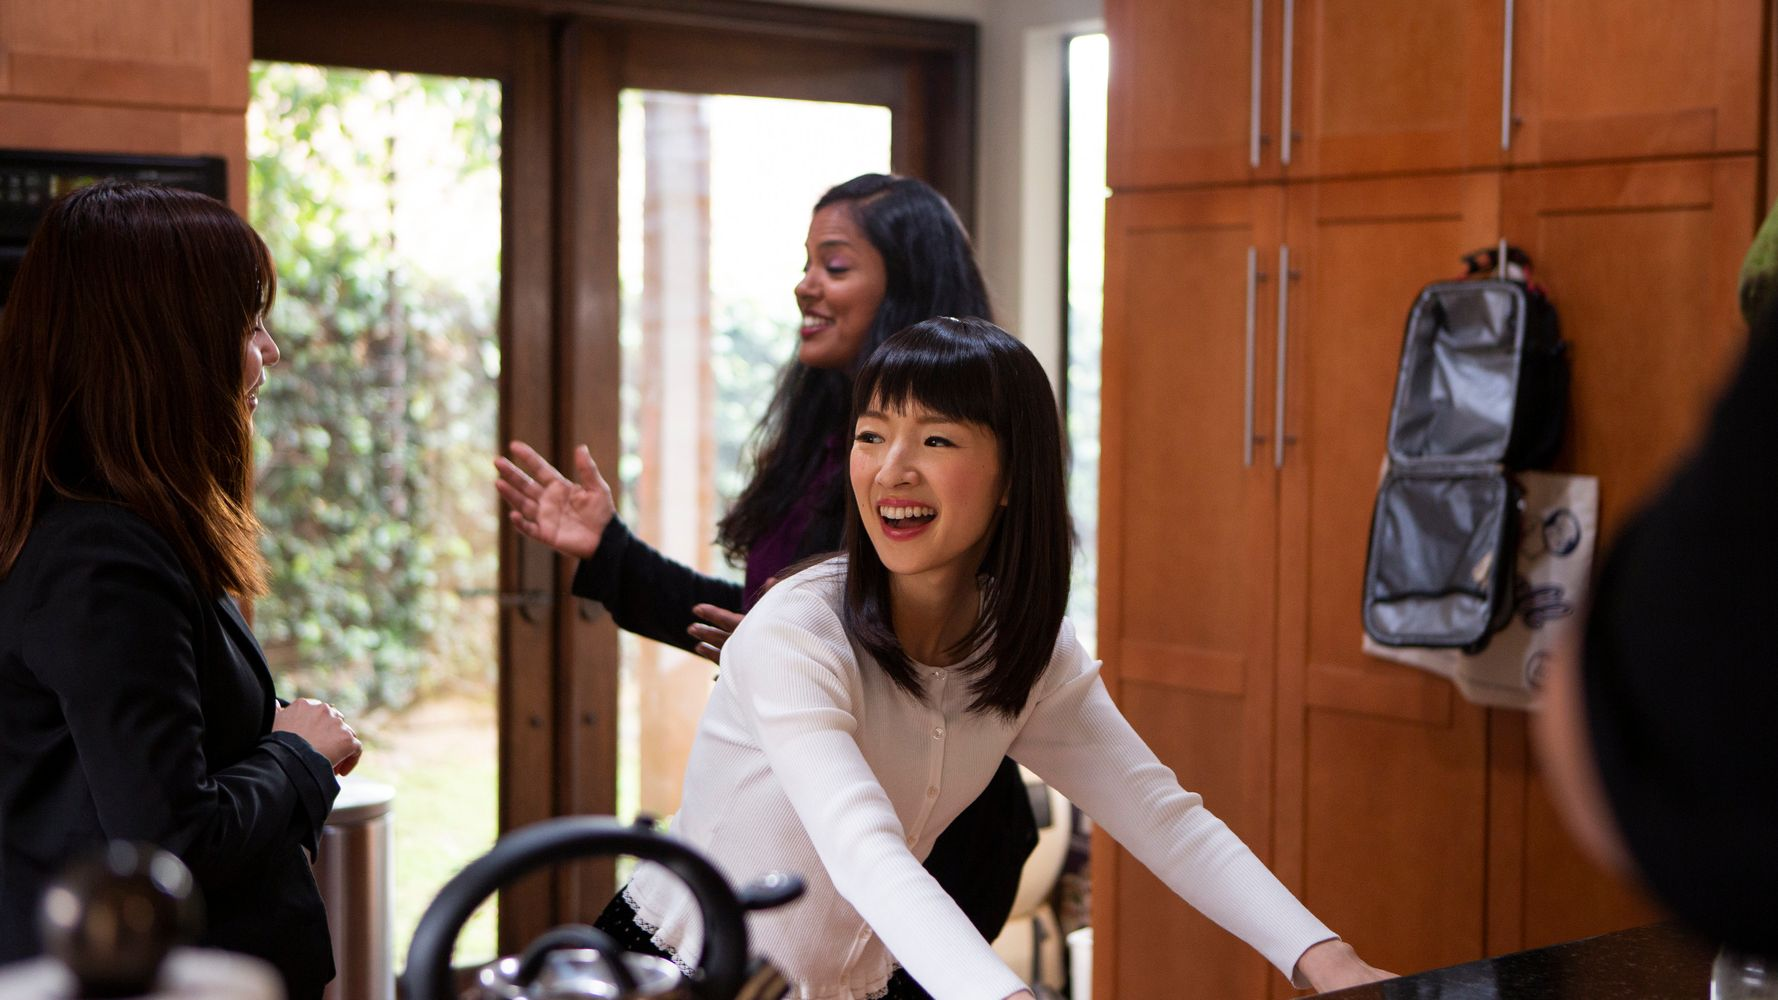 Ignore The Online Backlash Cycle: Marie Kondo's Netflix Show Is Good